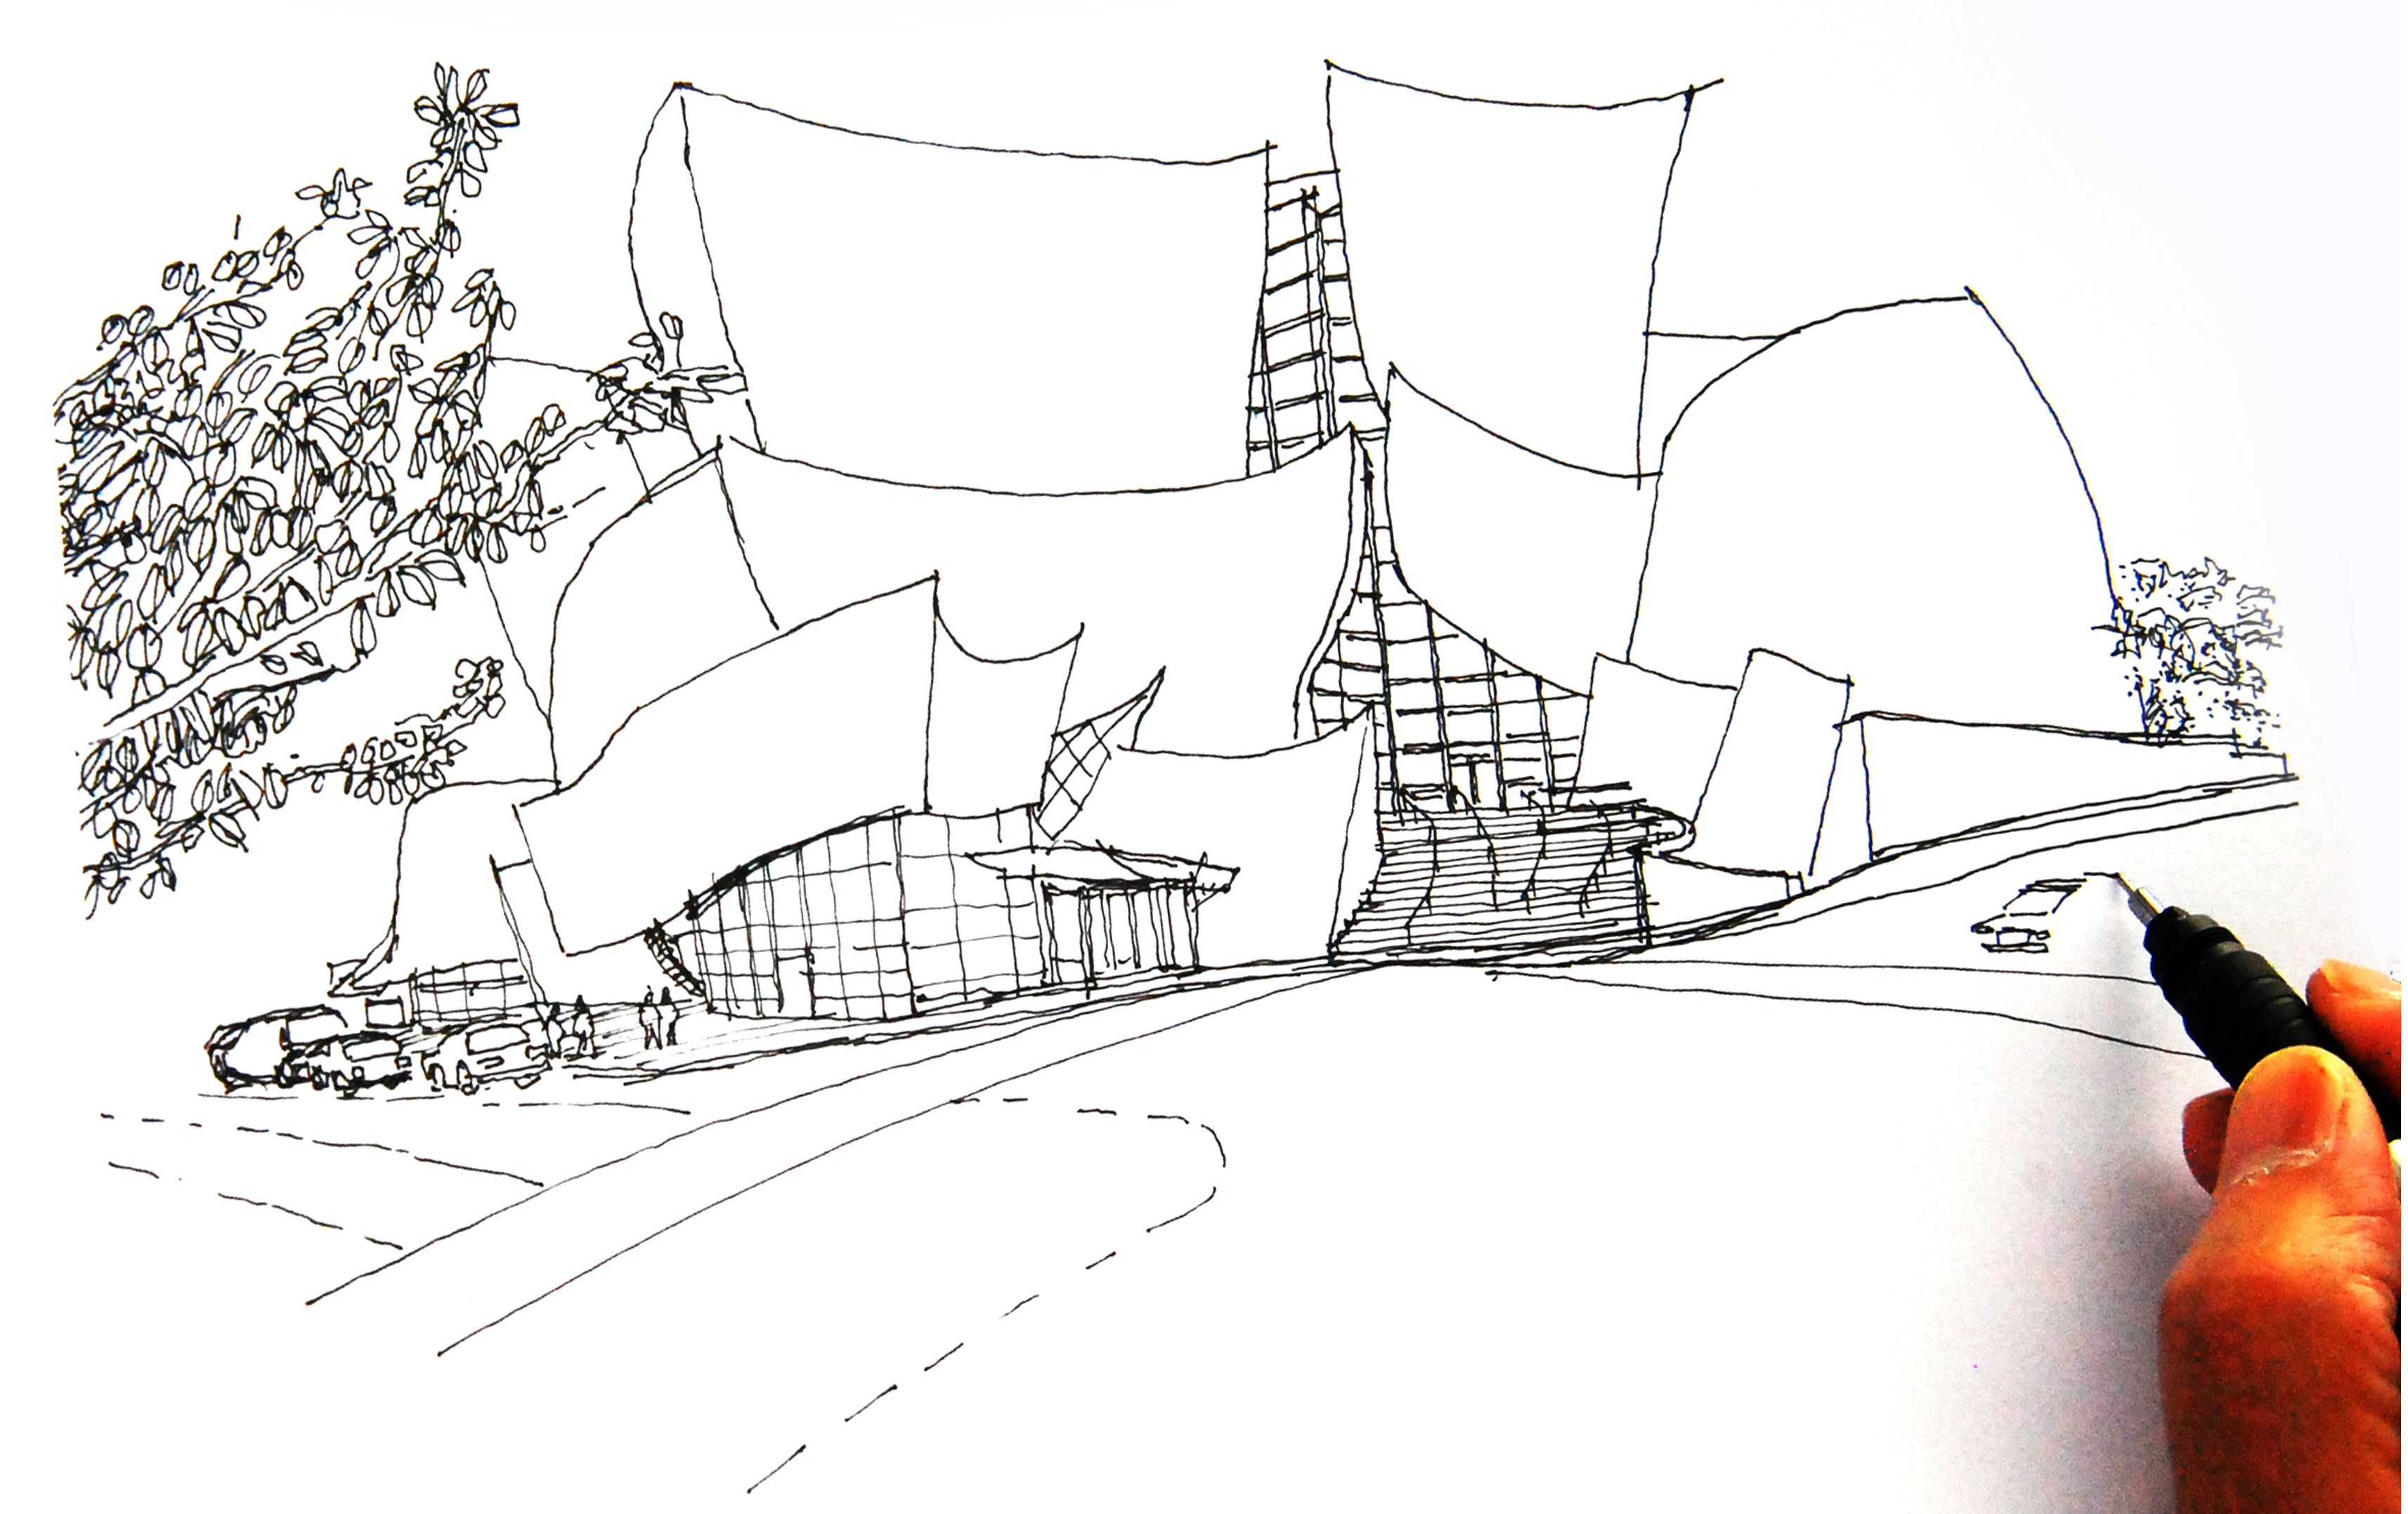 Sketching To Capture The Essence Of An Iconic Design